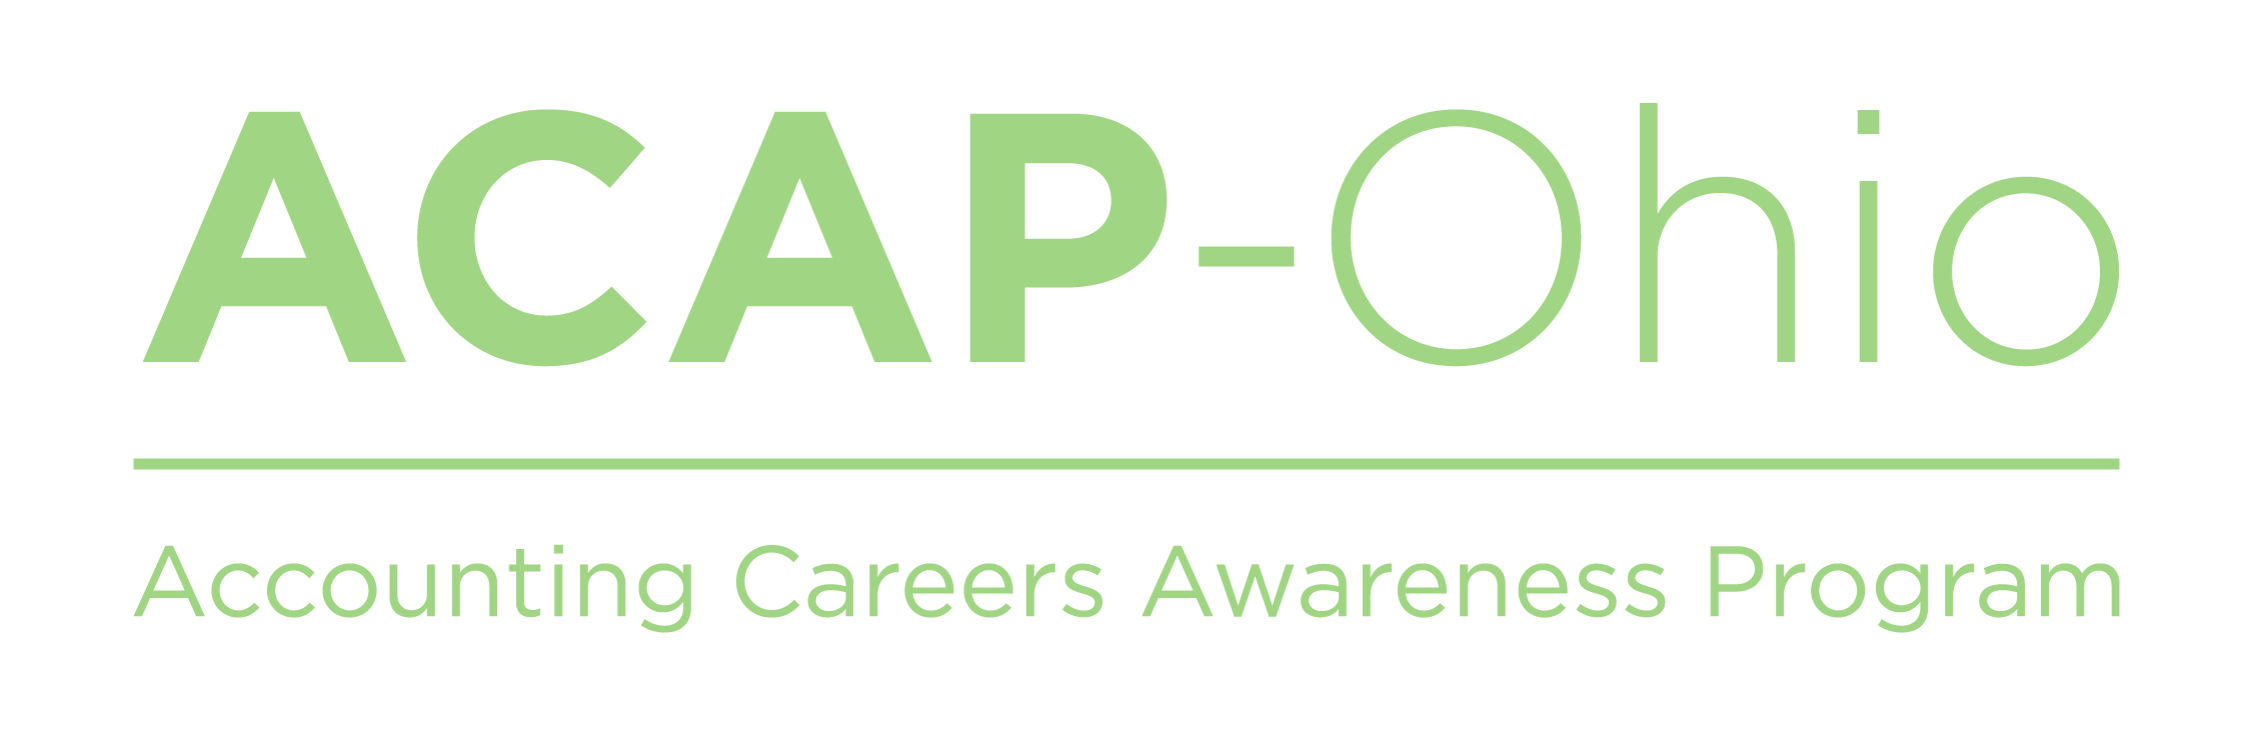 ACAP_Ohio_Logo_2017